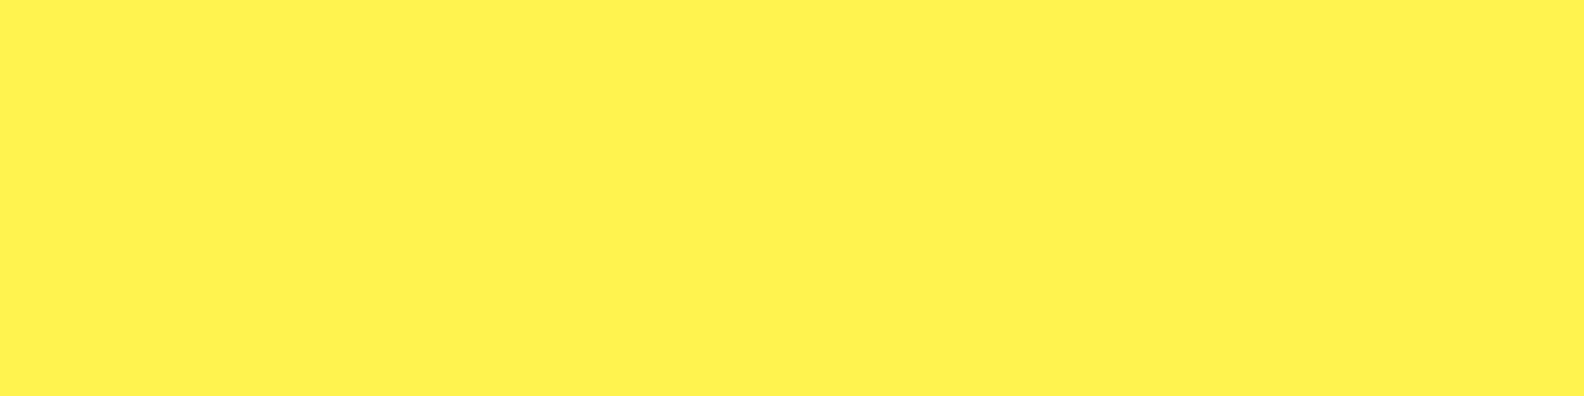 1584x396 Lemon Yellow Solid Color Background